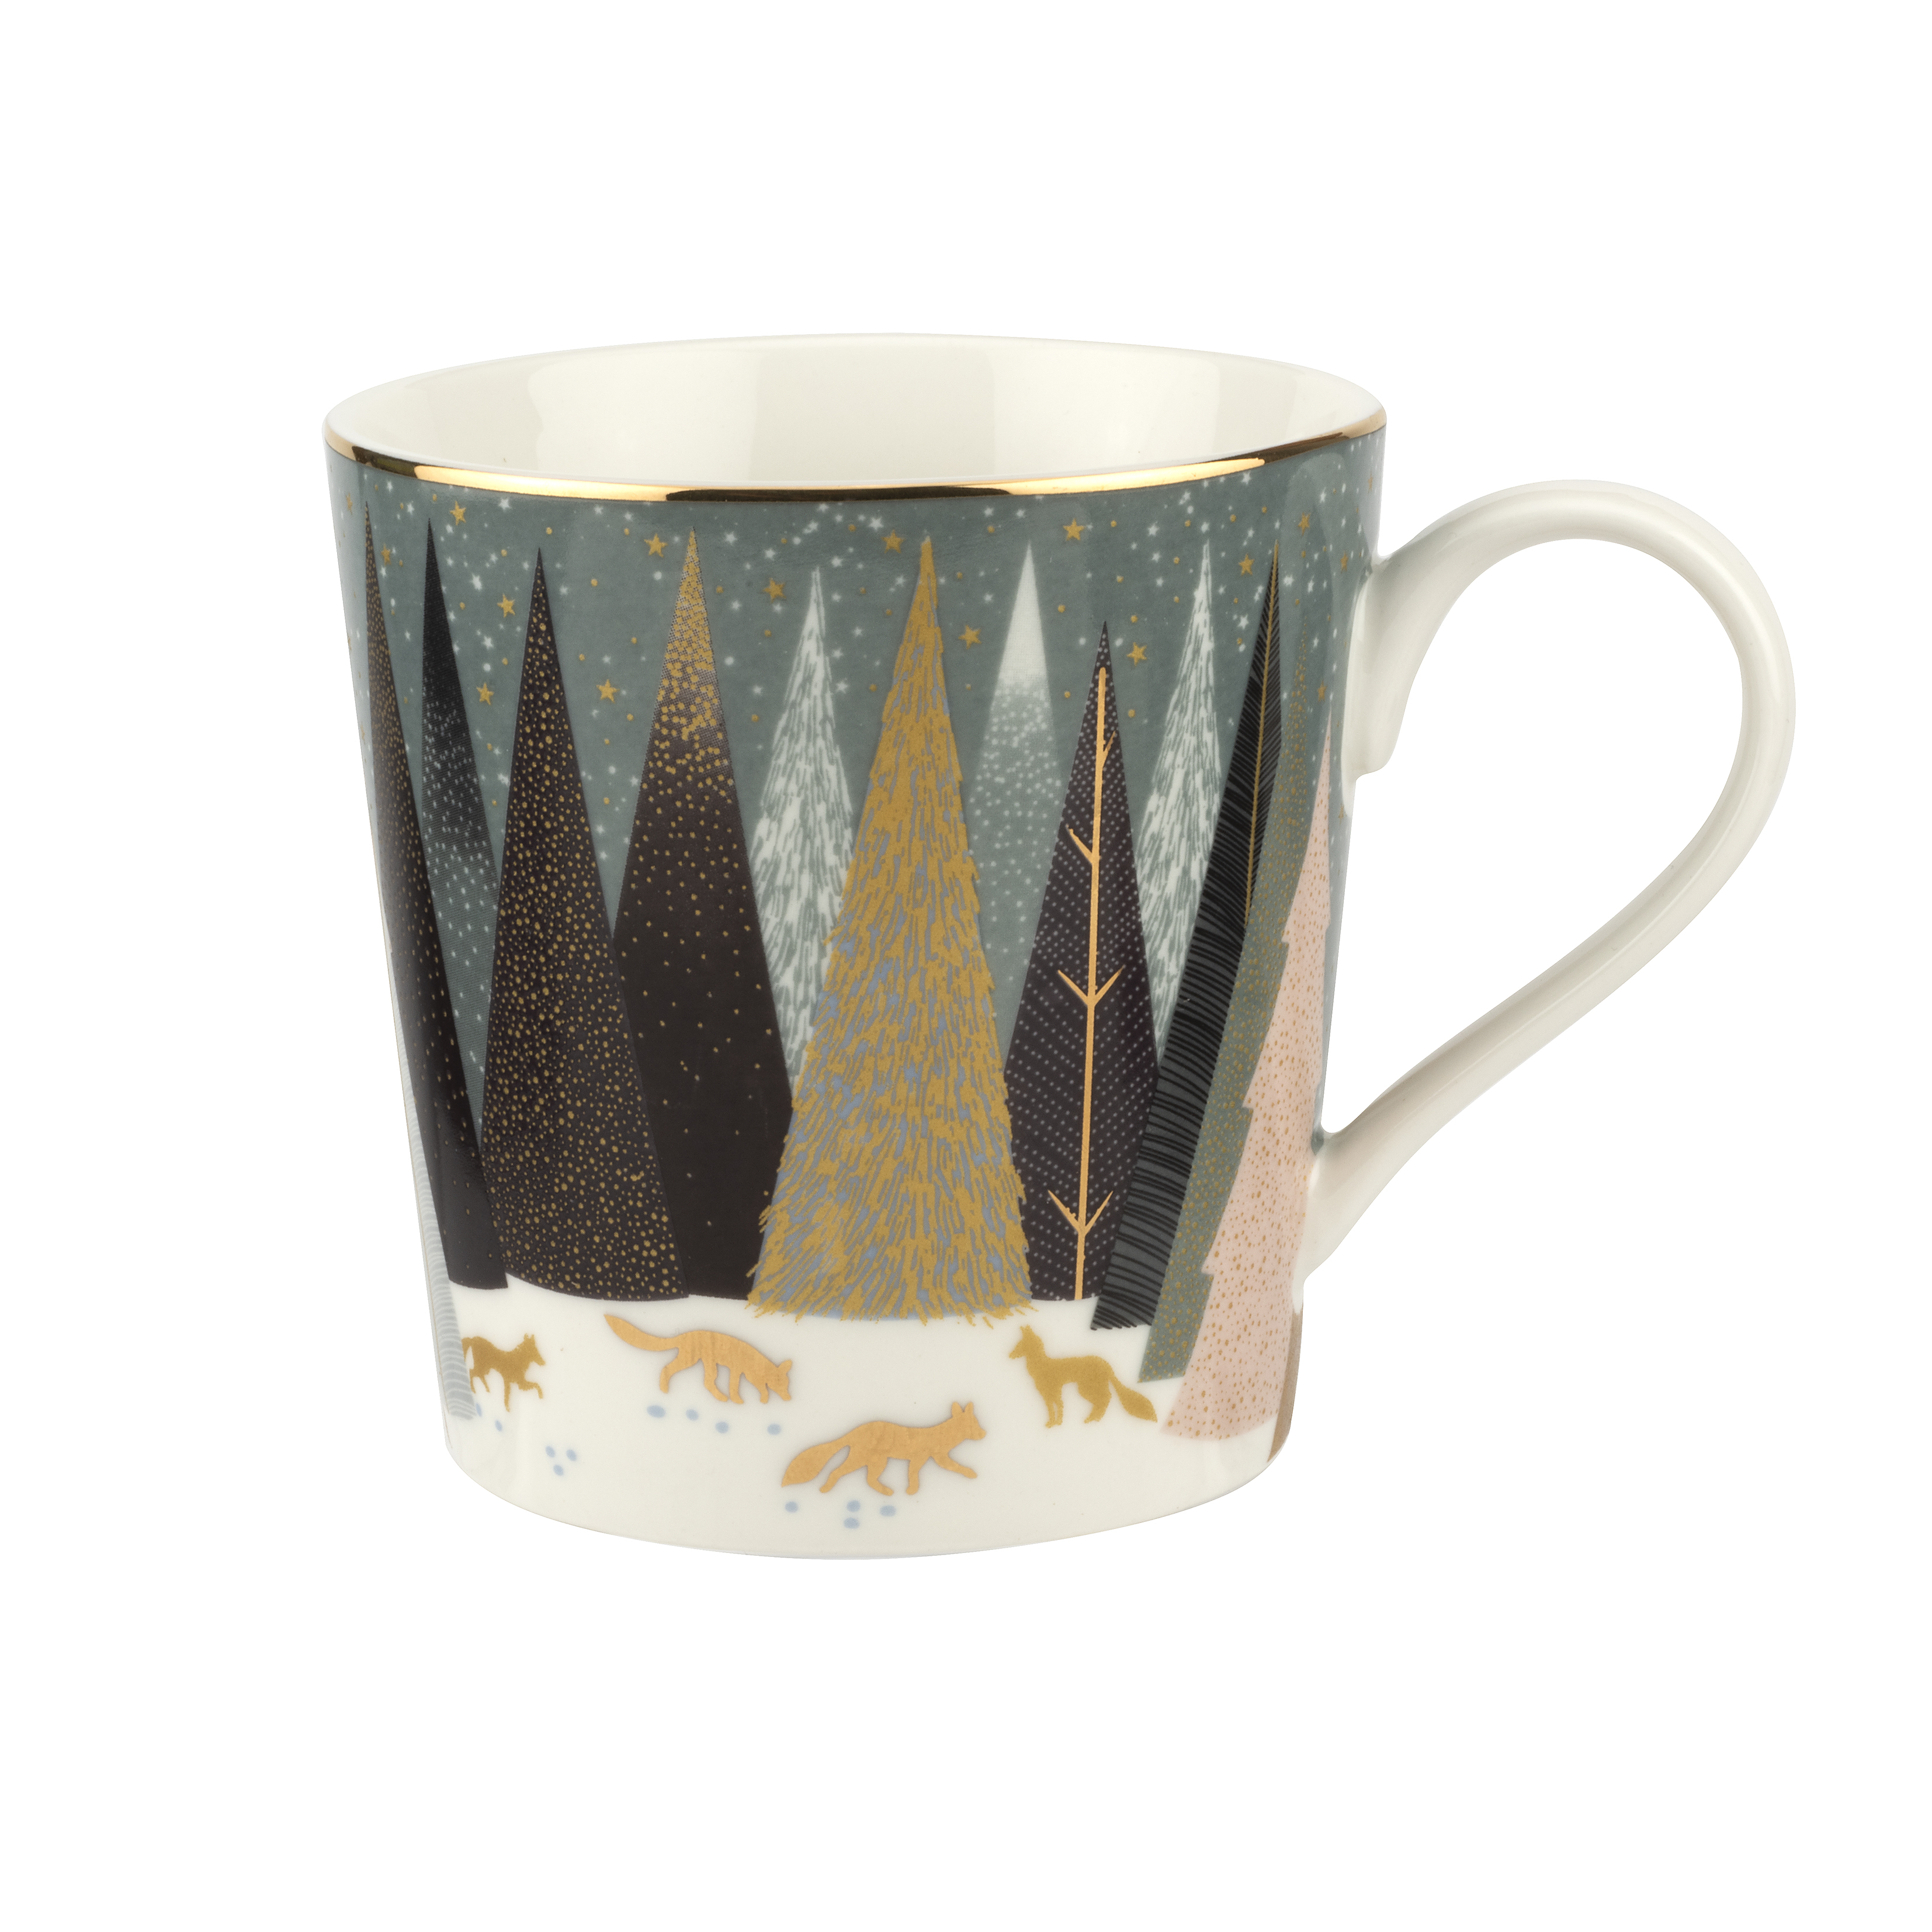 Sara Miller London for Portmeirion Frosted Pines Set of 4 Mugs 12 oz image number 4